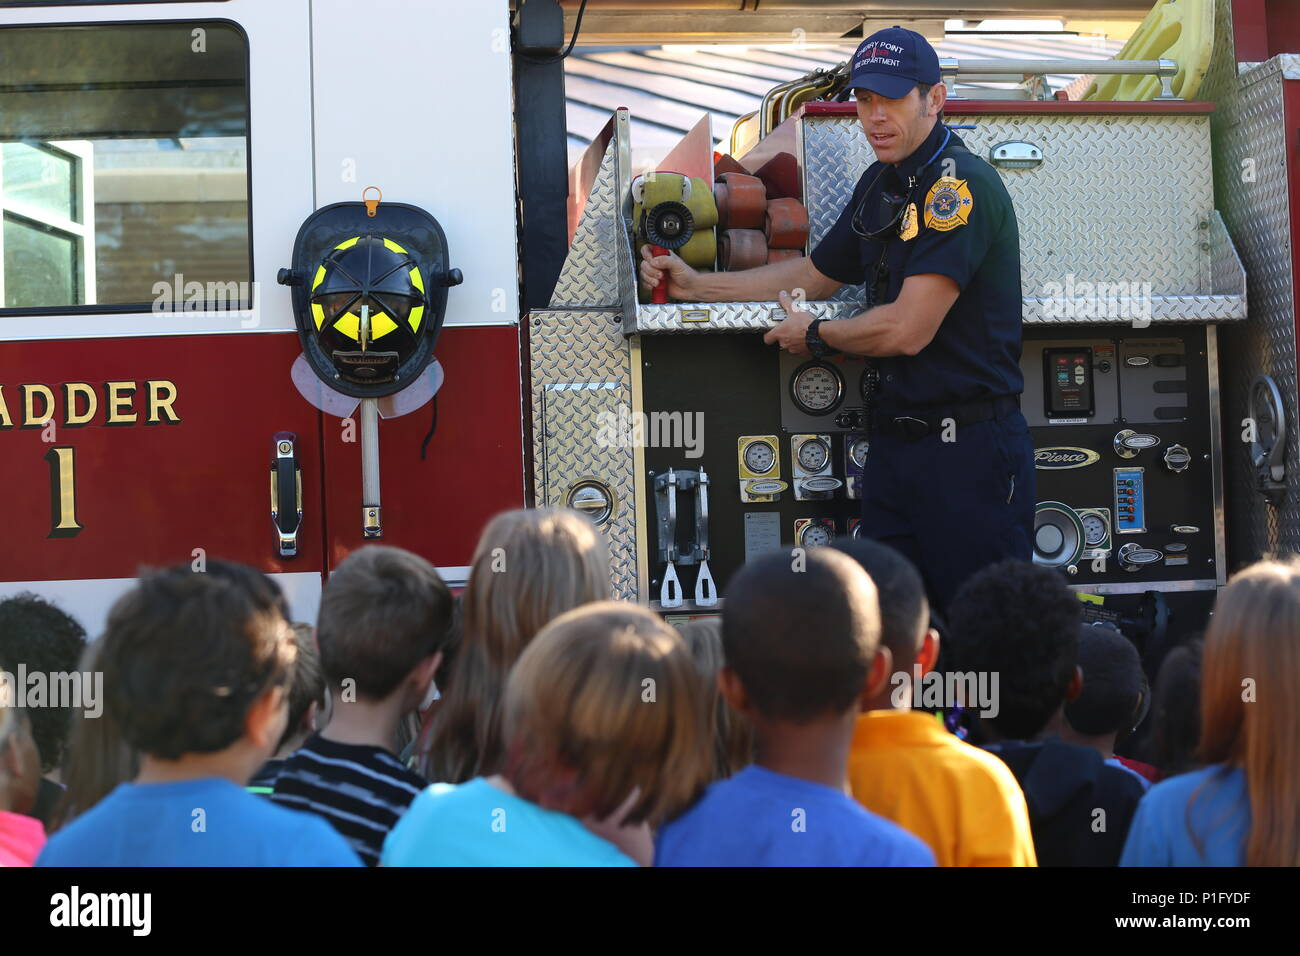 Edward Hudson explains the functions of a ladder truck to